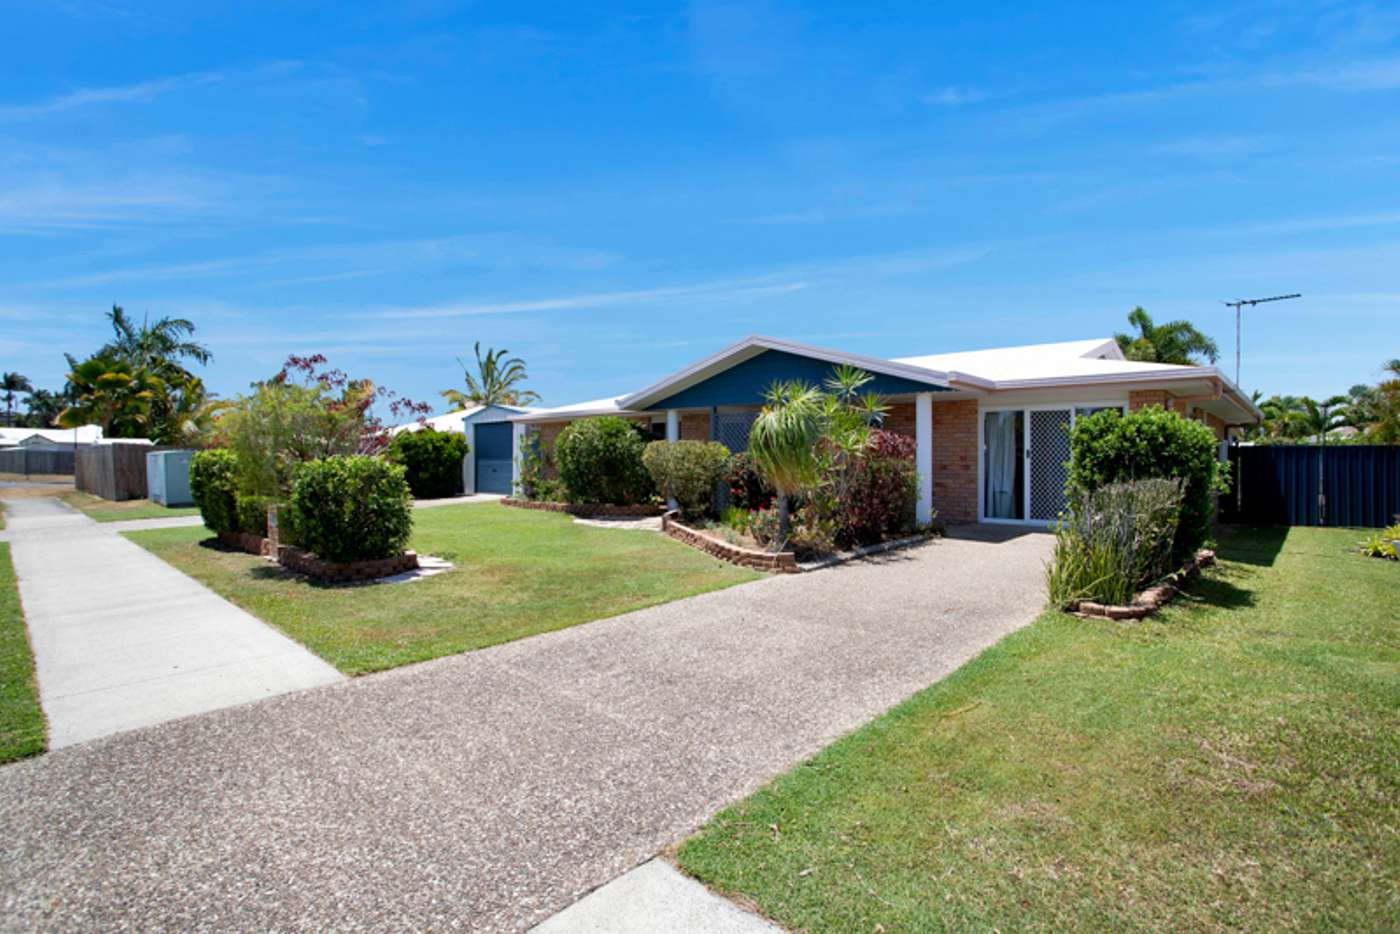 Main view of Homely house listing, 91 Broomdykes Drive, Beaconsfield QLD 4740